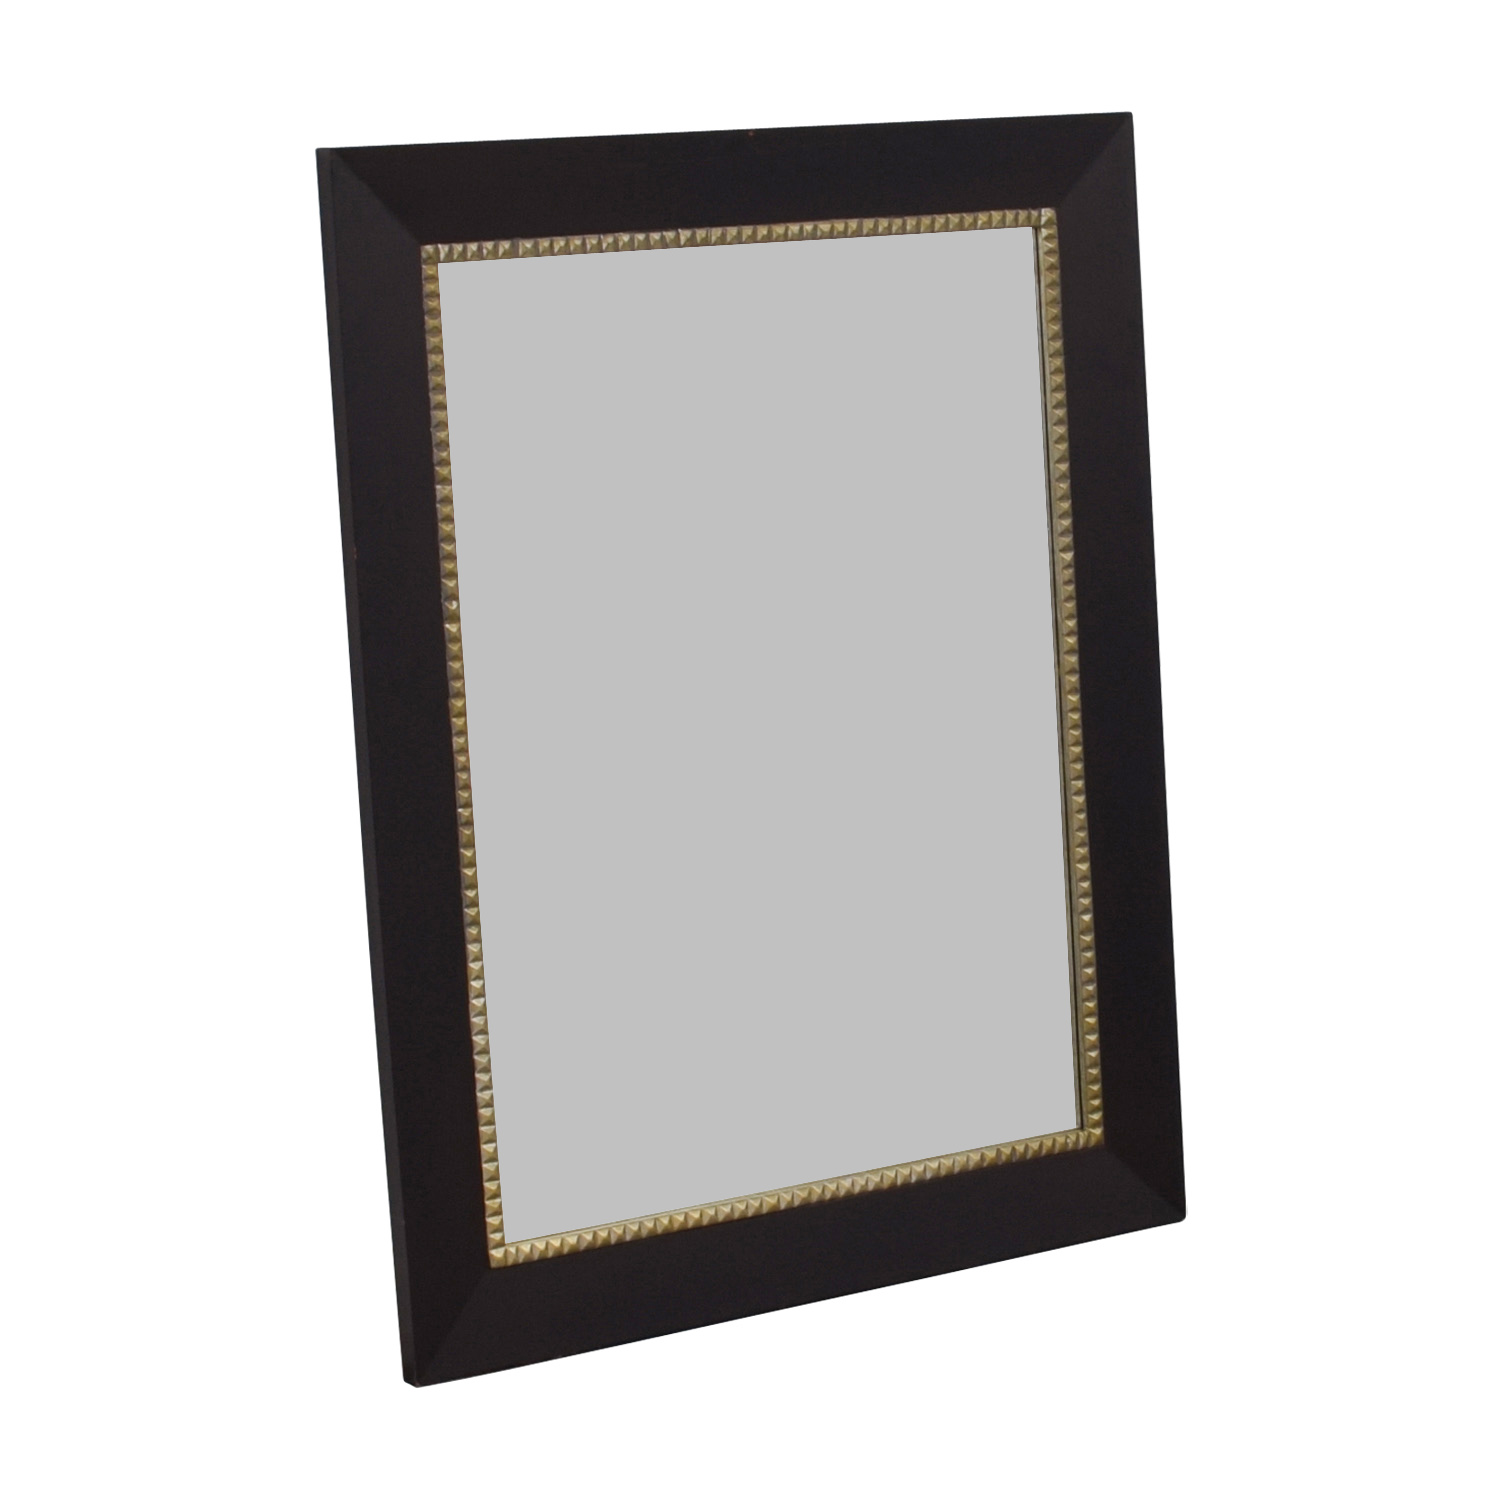 Studded Brown Framed Mirror Decor